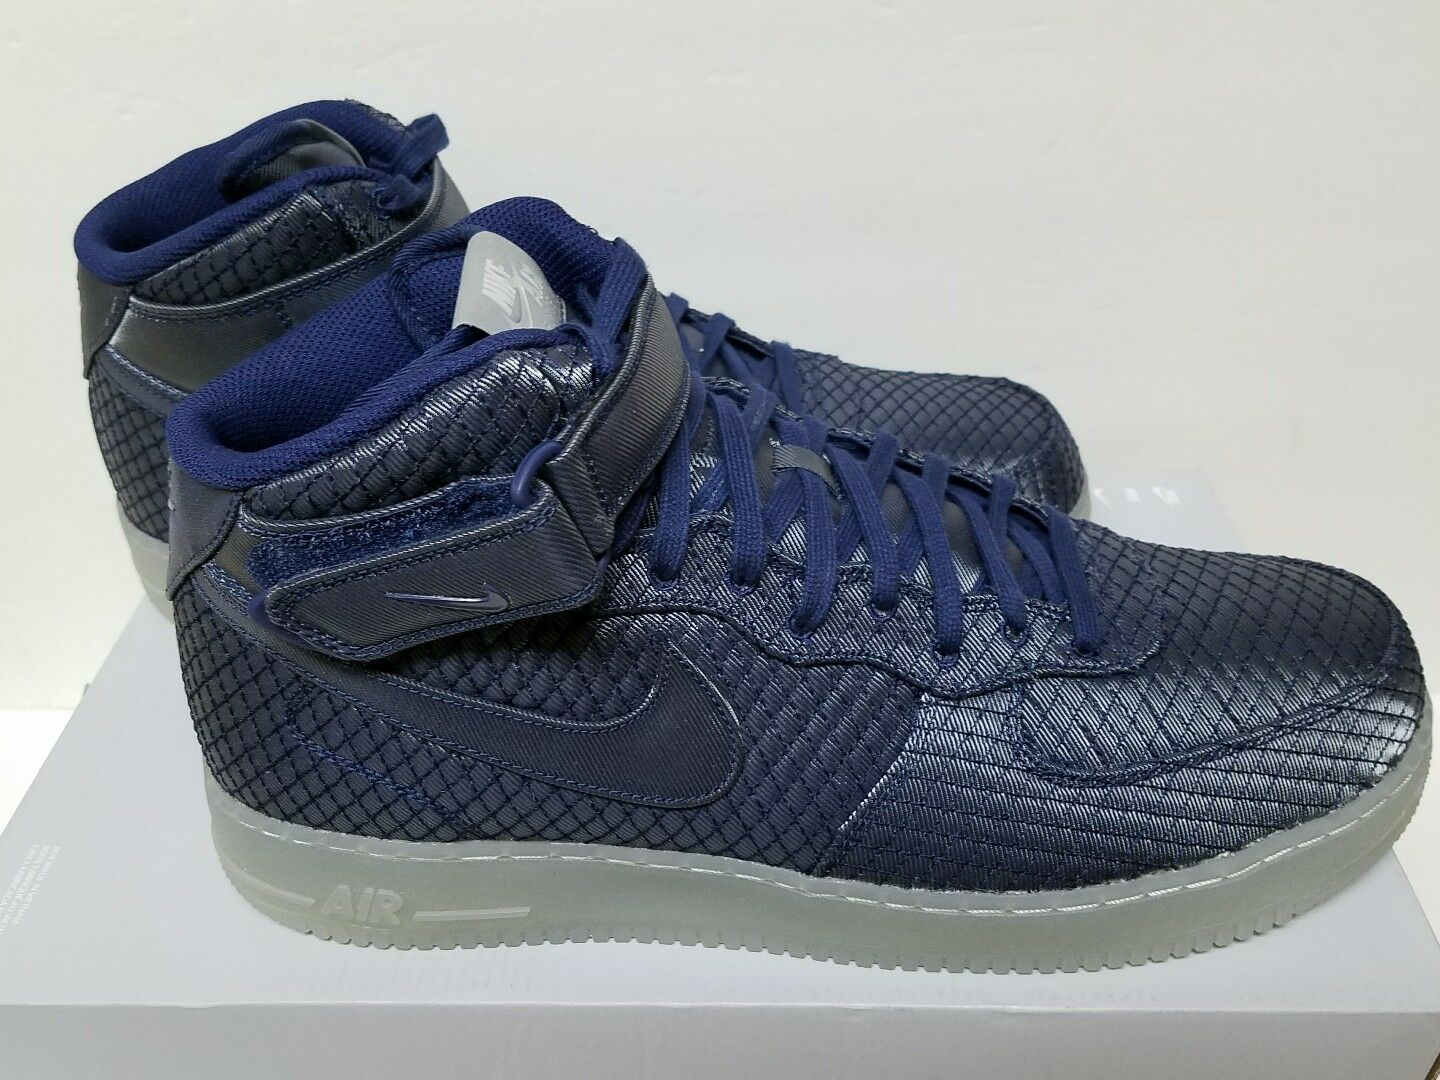 NIKE AIR FORCE 1 07 MID LV8 Size BLUE 7 & 10 BINARY BLUE Size METALLIC SILVER 804609 401 1bc203